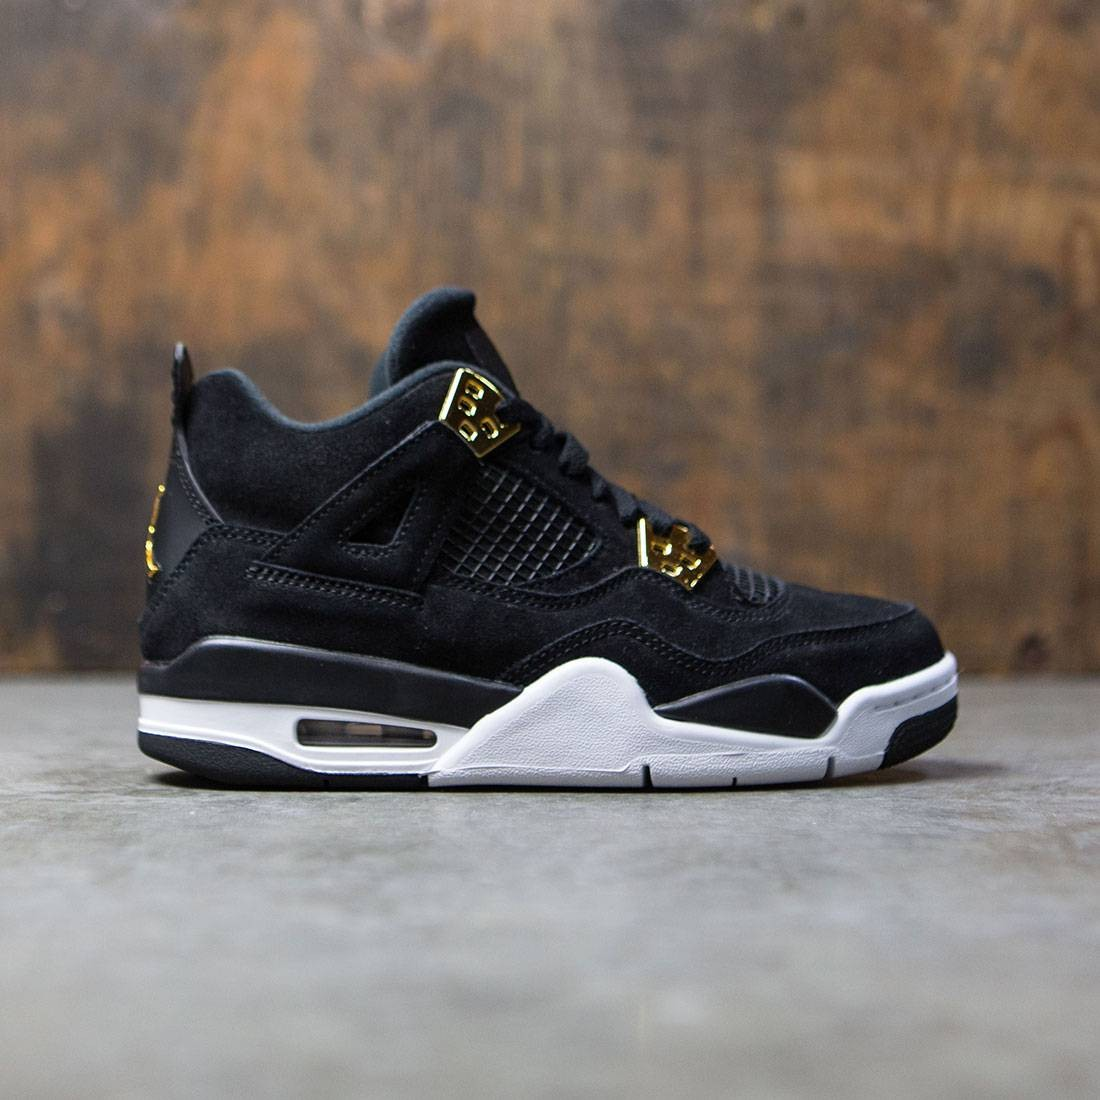 Air Jordan IV Retro Big Kids (black / metallic gold-white)